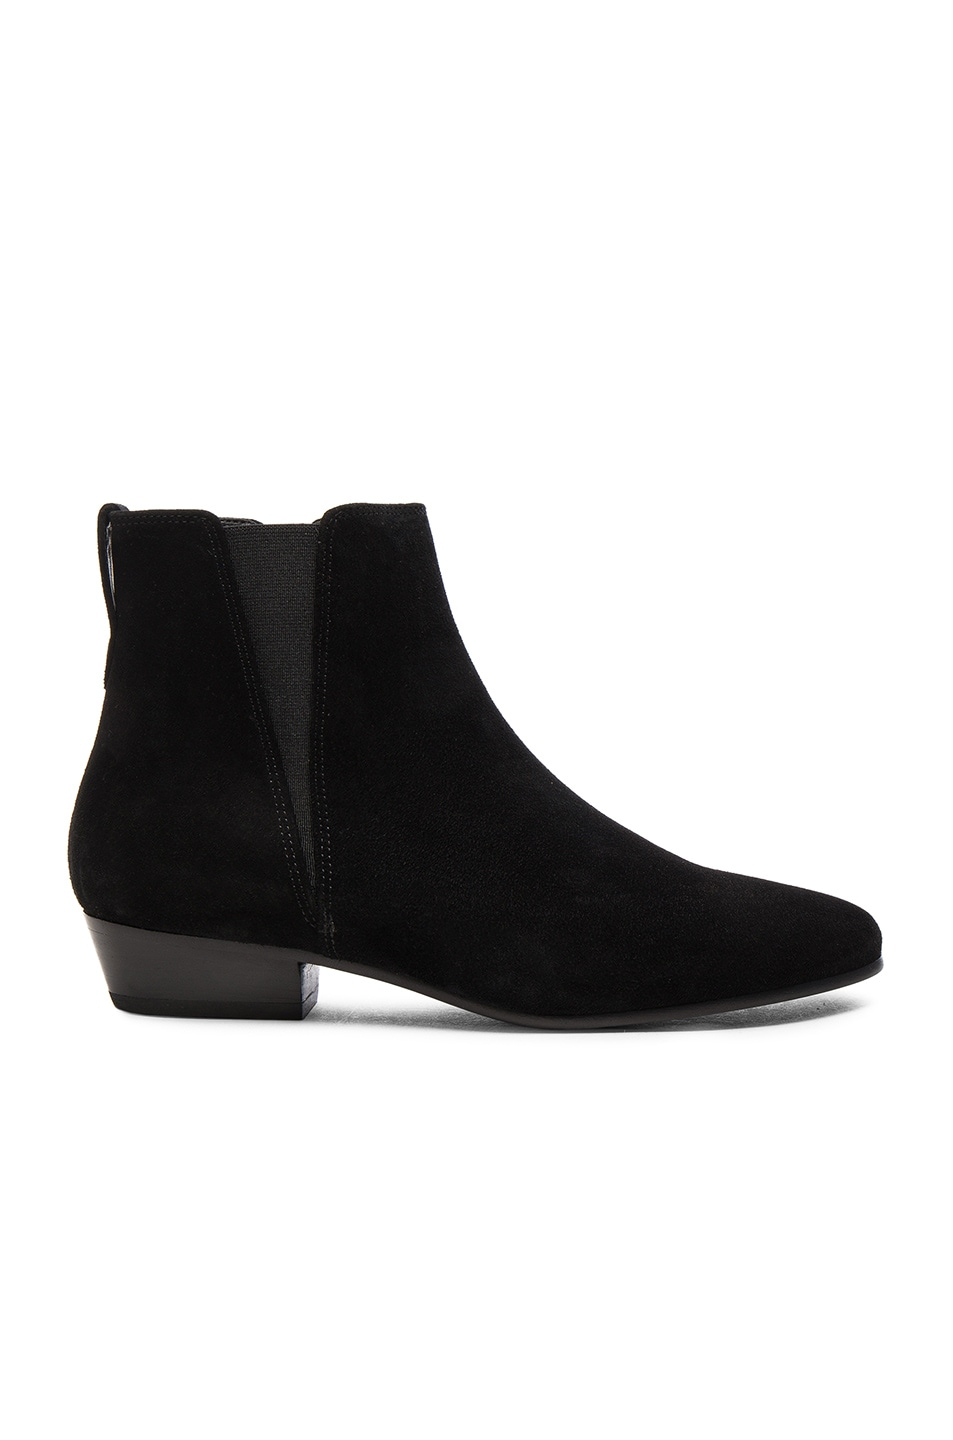 Image 1 of Isabel Marant Etoile Patsha Velvet Booties in Black